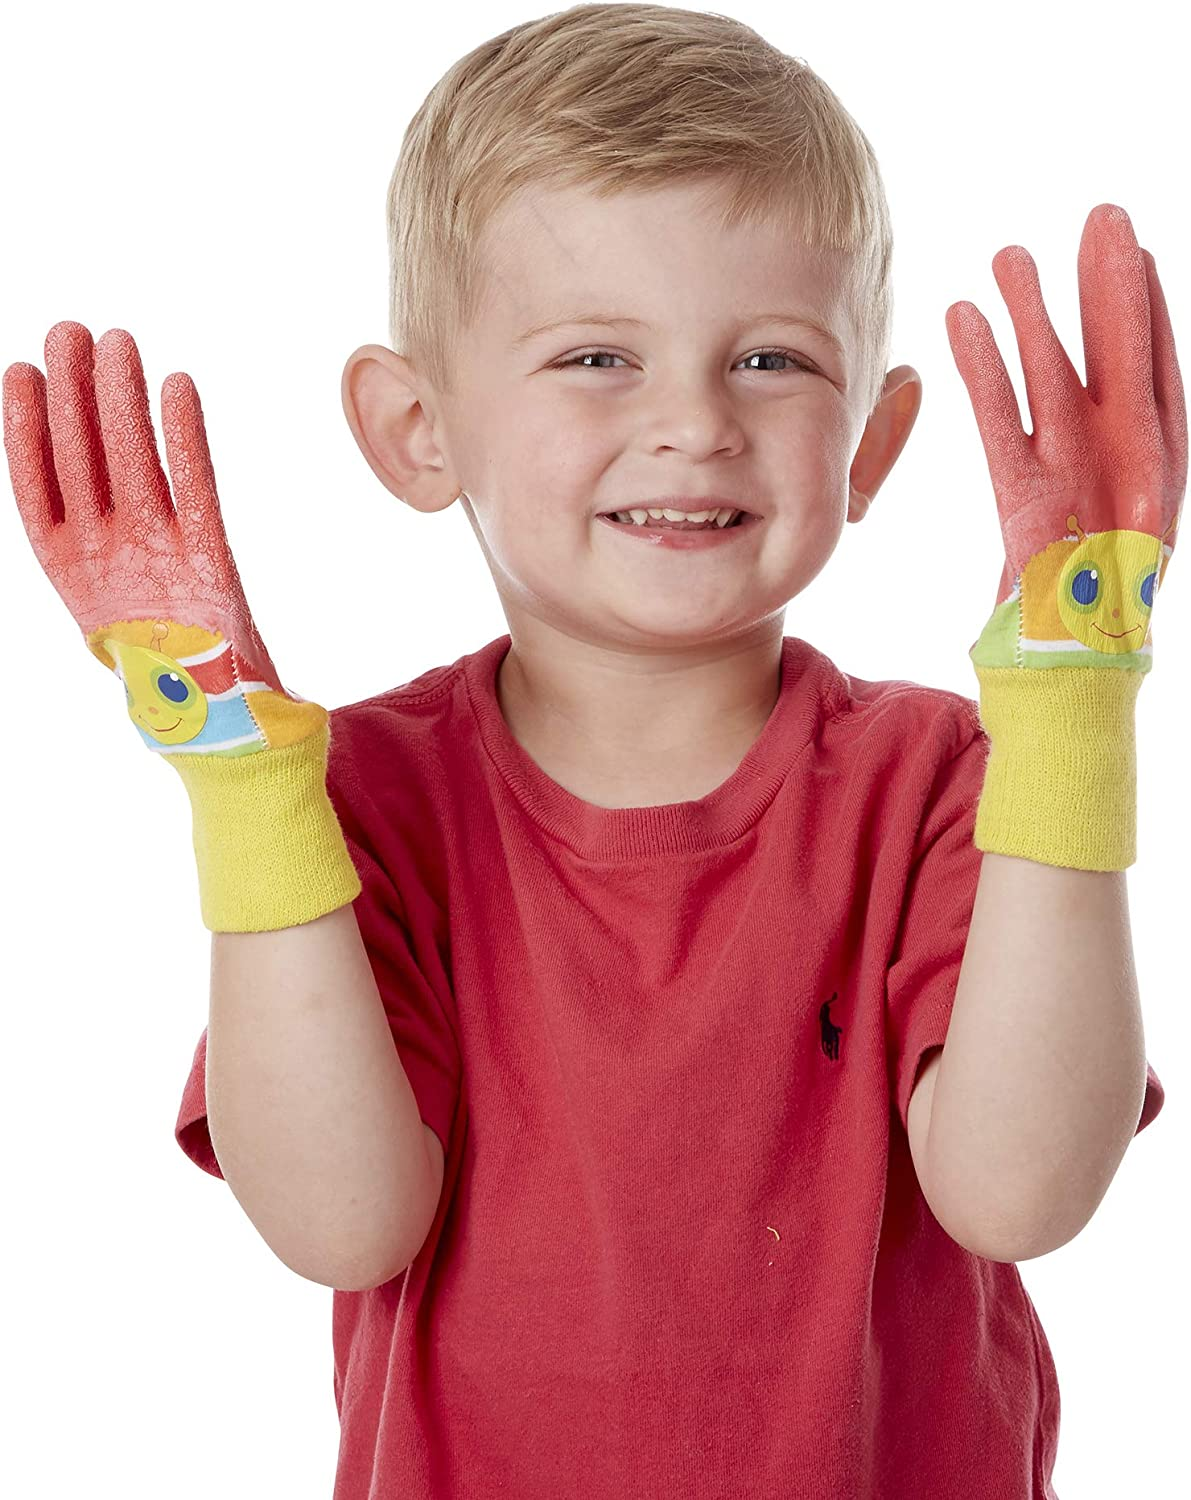 Melissa & Doug Giddy Buggy Good Gripping Gardening Gloves With Easy-Grip Rubber on Palms : Clothing, Shoes & Jewelry